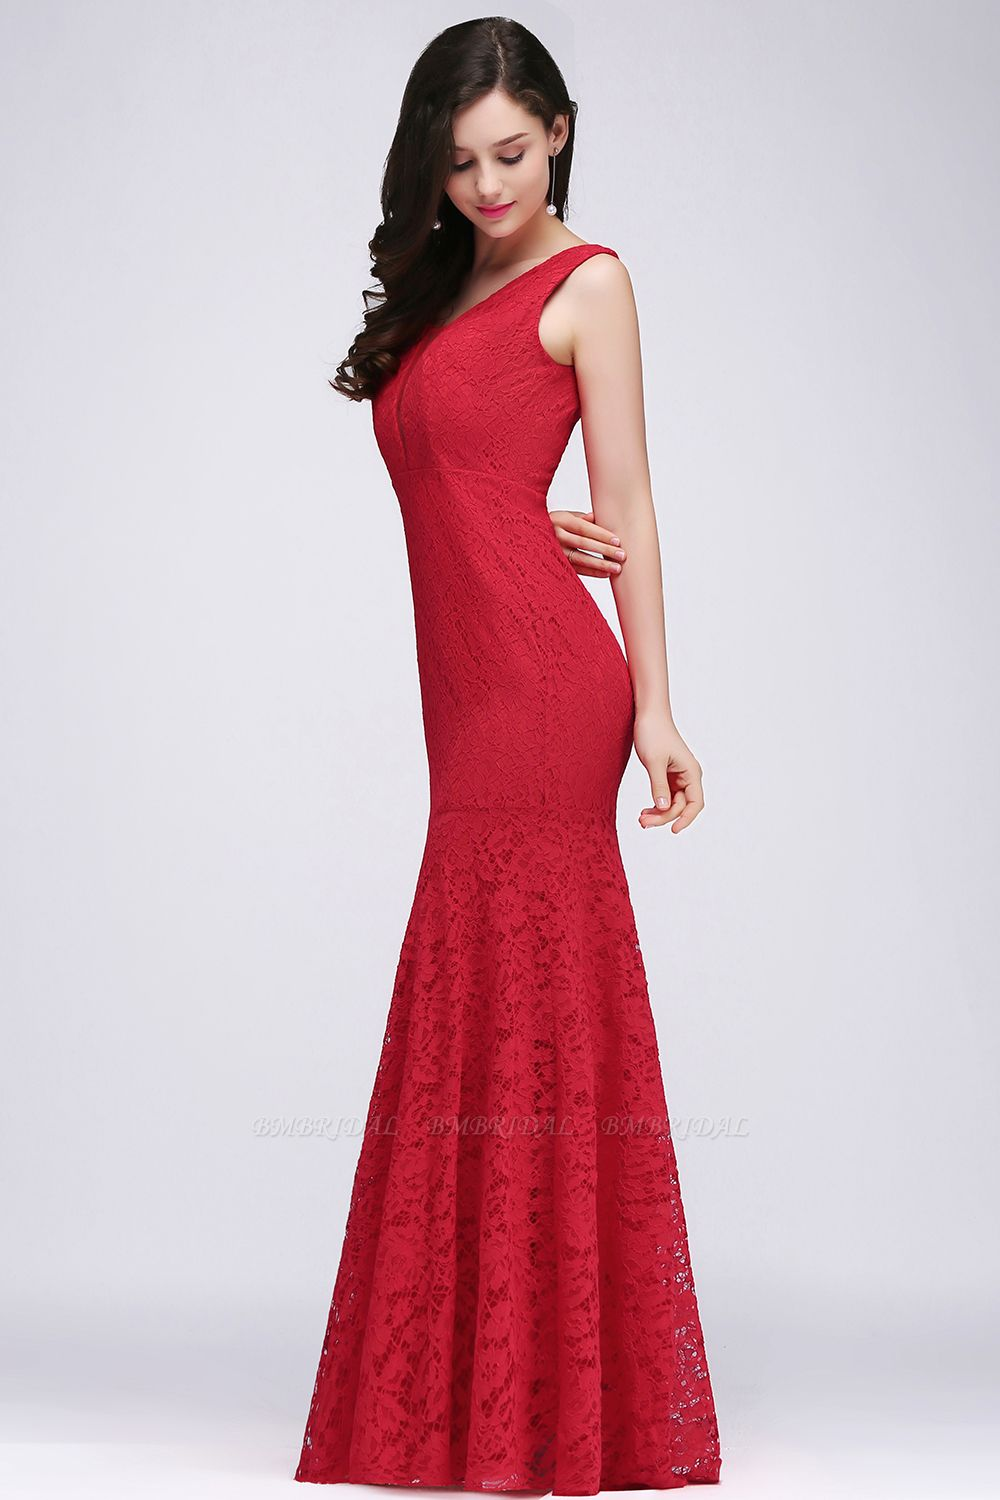 BMbridal Stunning Short Red Lace Mermaid Prom Dress